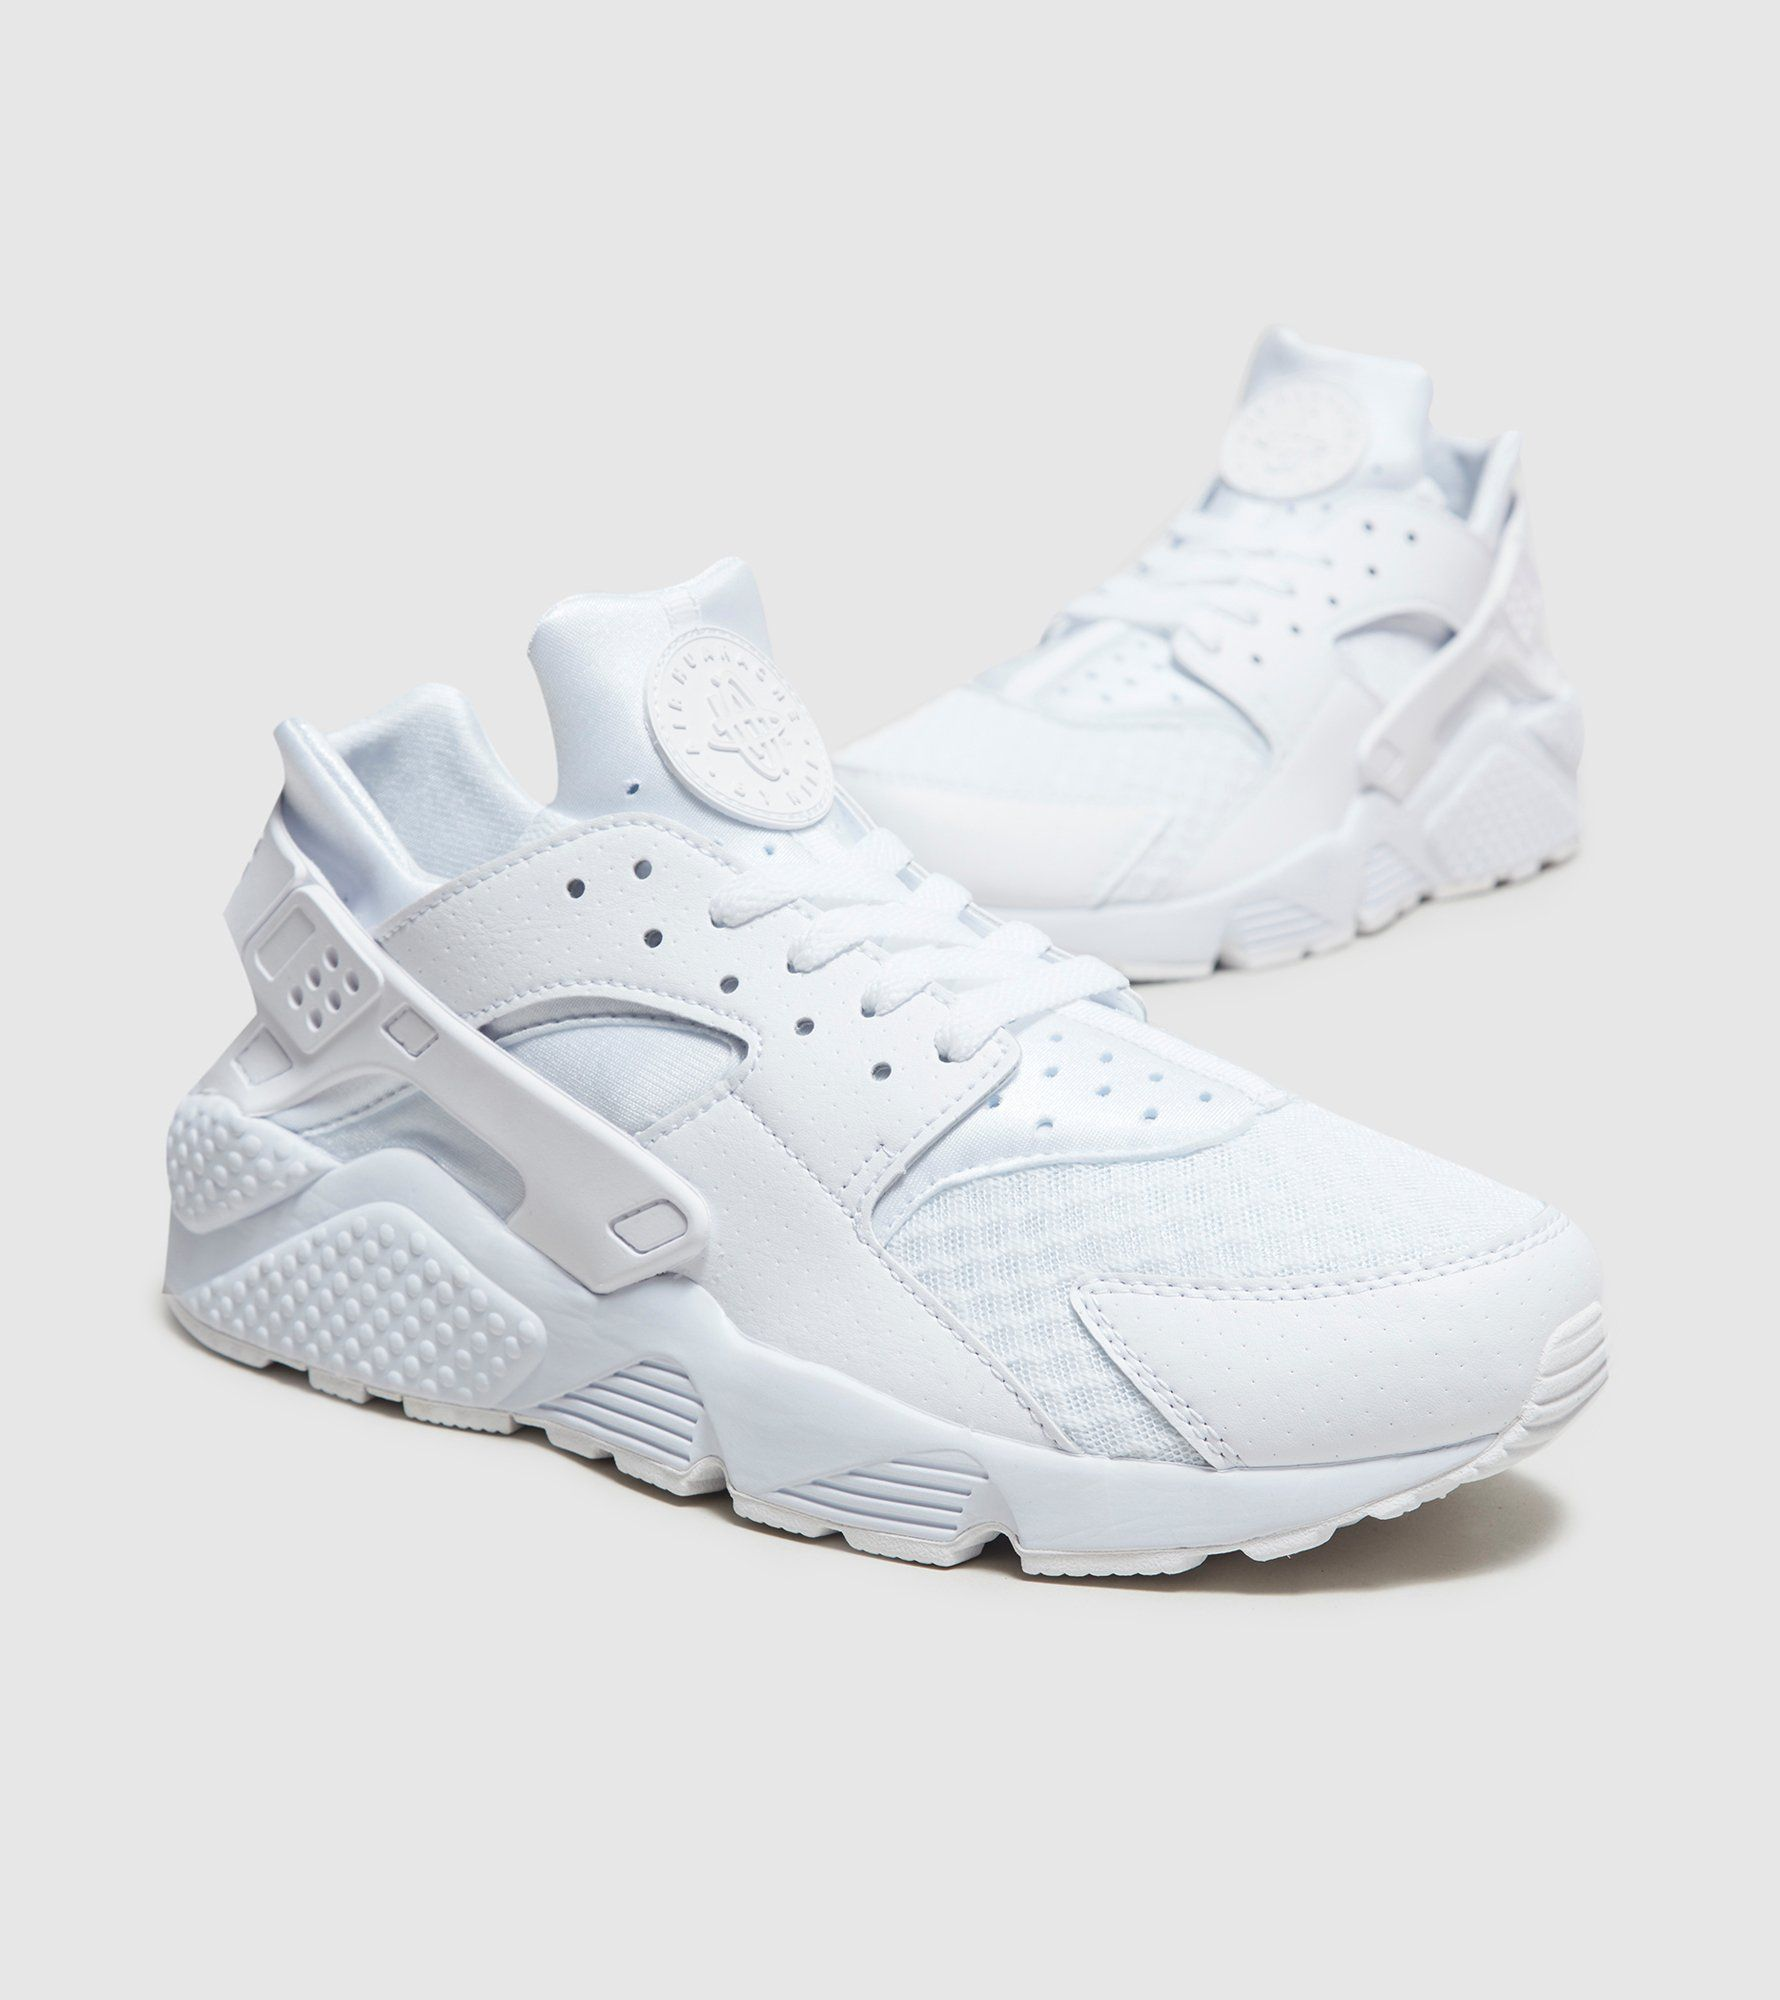 factory authentic 0abaf 5f2df Nike Air Huarache Platinum White  Size